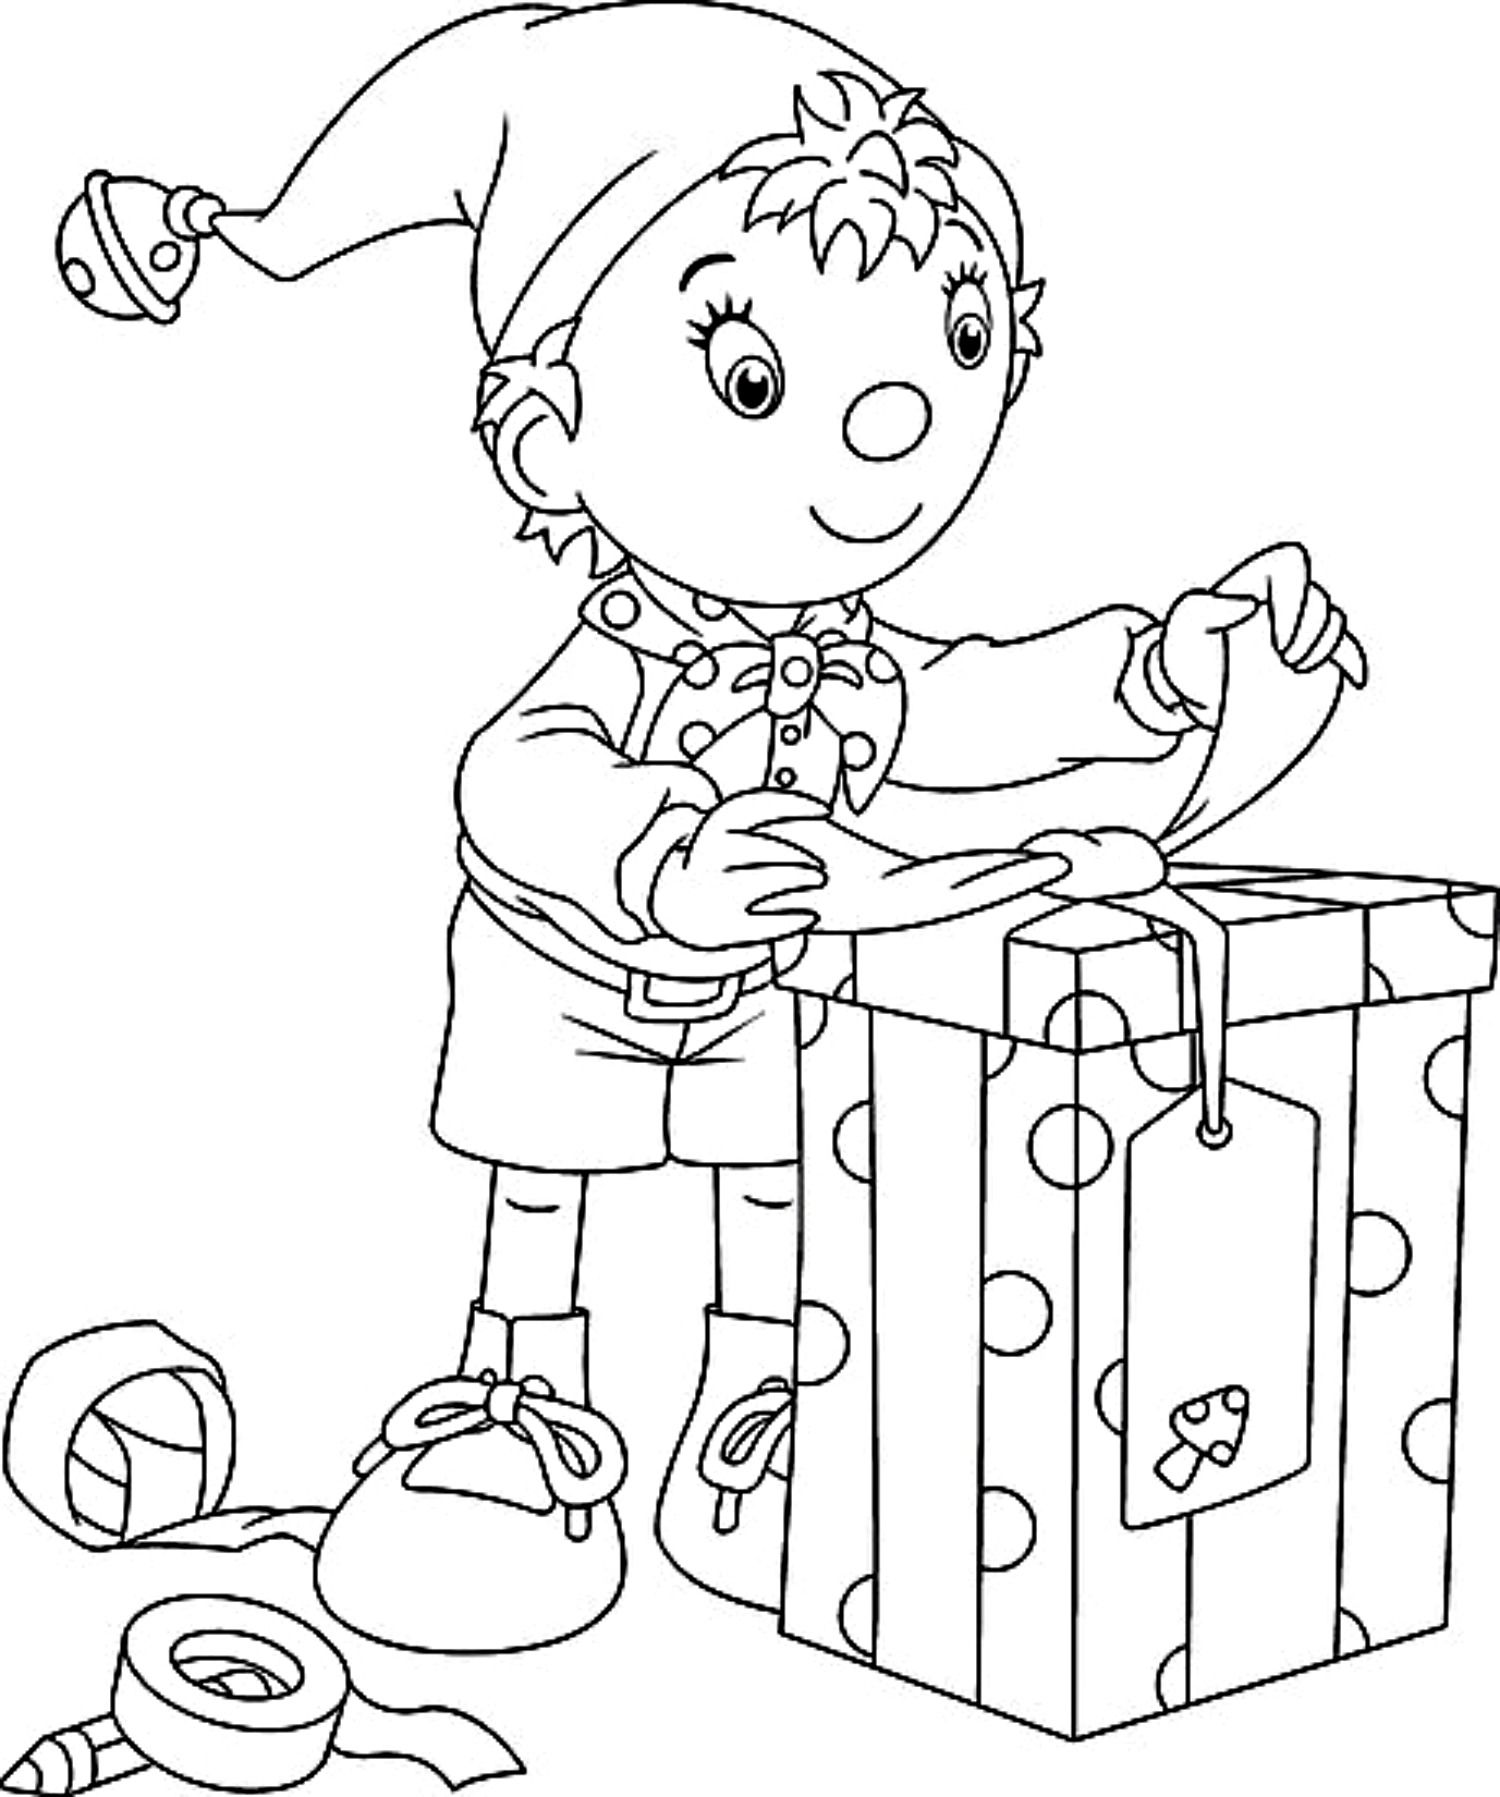 Coloring Pages Christmas Coloring Pages For Kindergarten 1000 images about kids coloring pages on pinterest thanksgiving and books